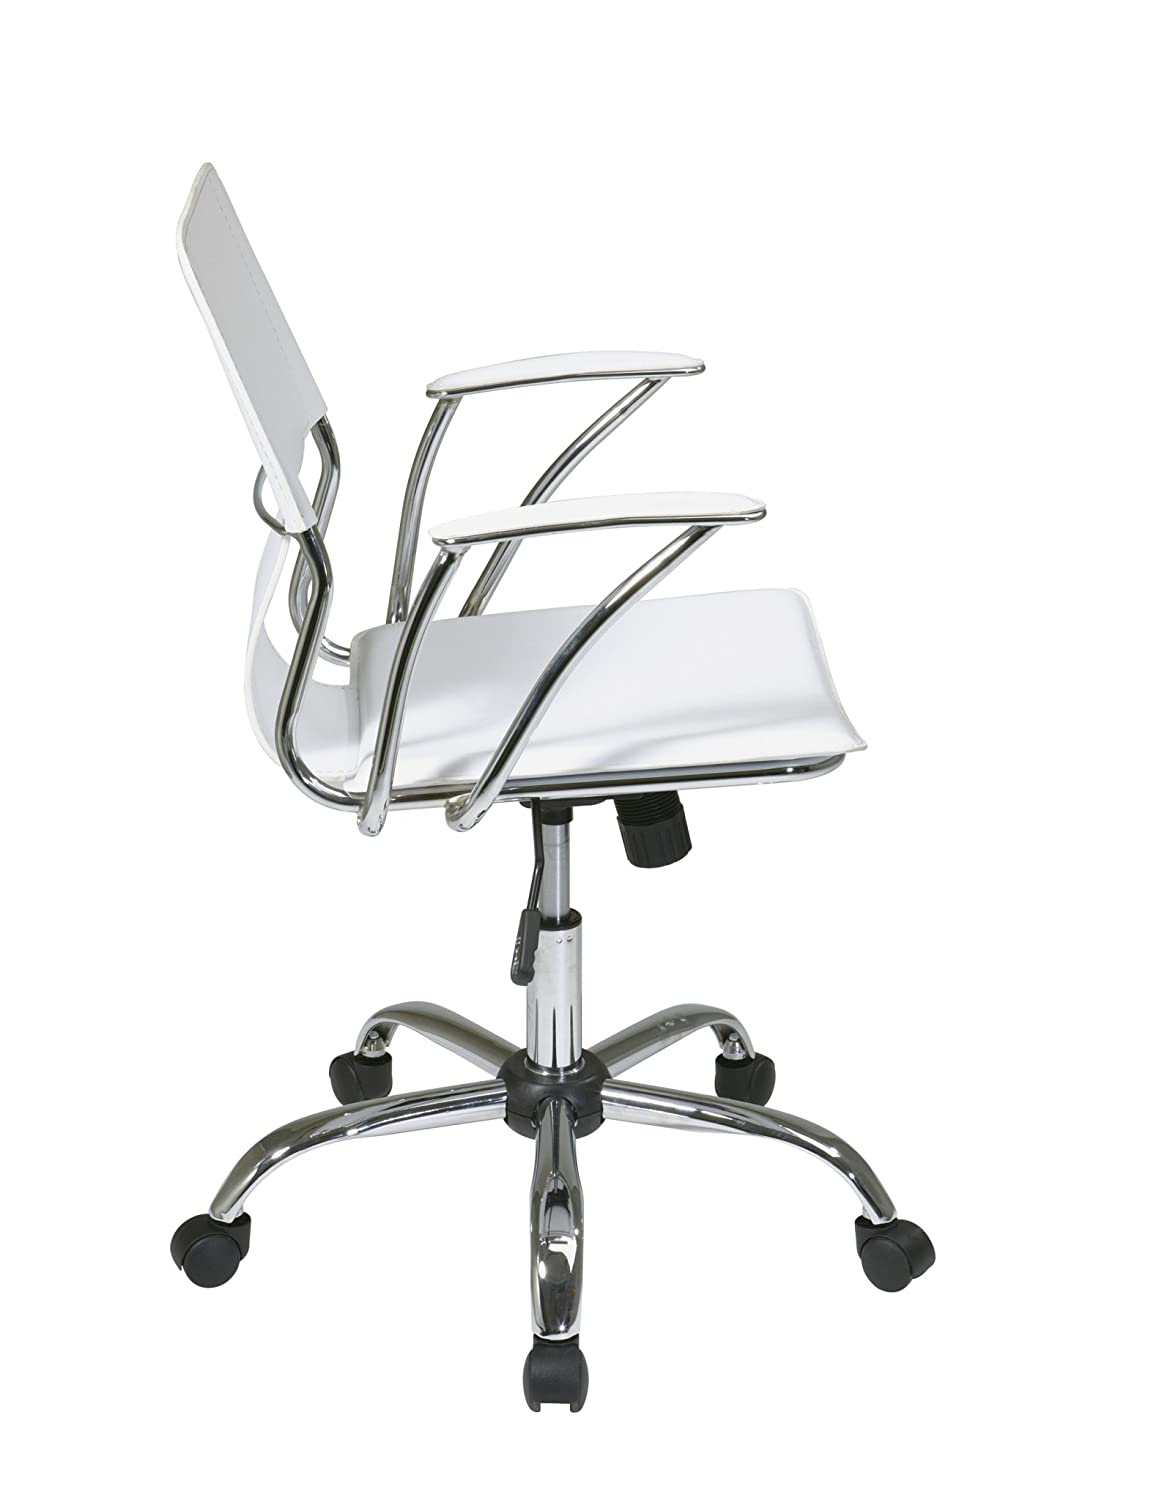 avenue six ave six dorado contour seat and back with built in lumbar support adjustable office chair white